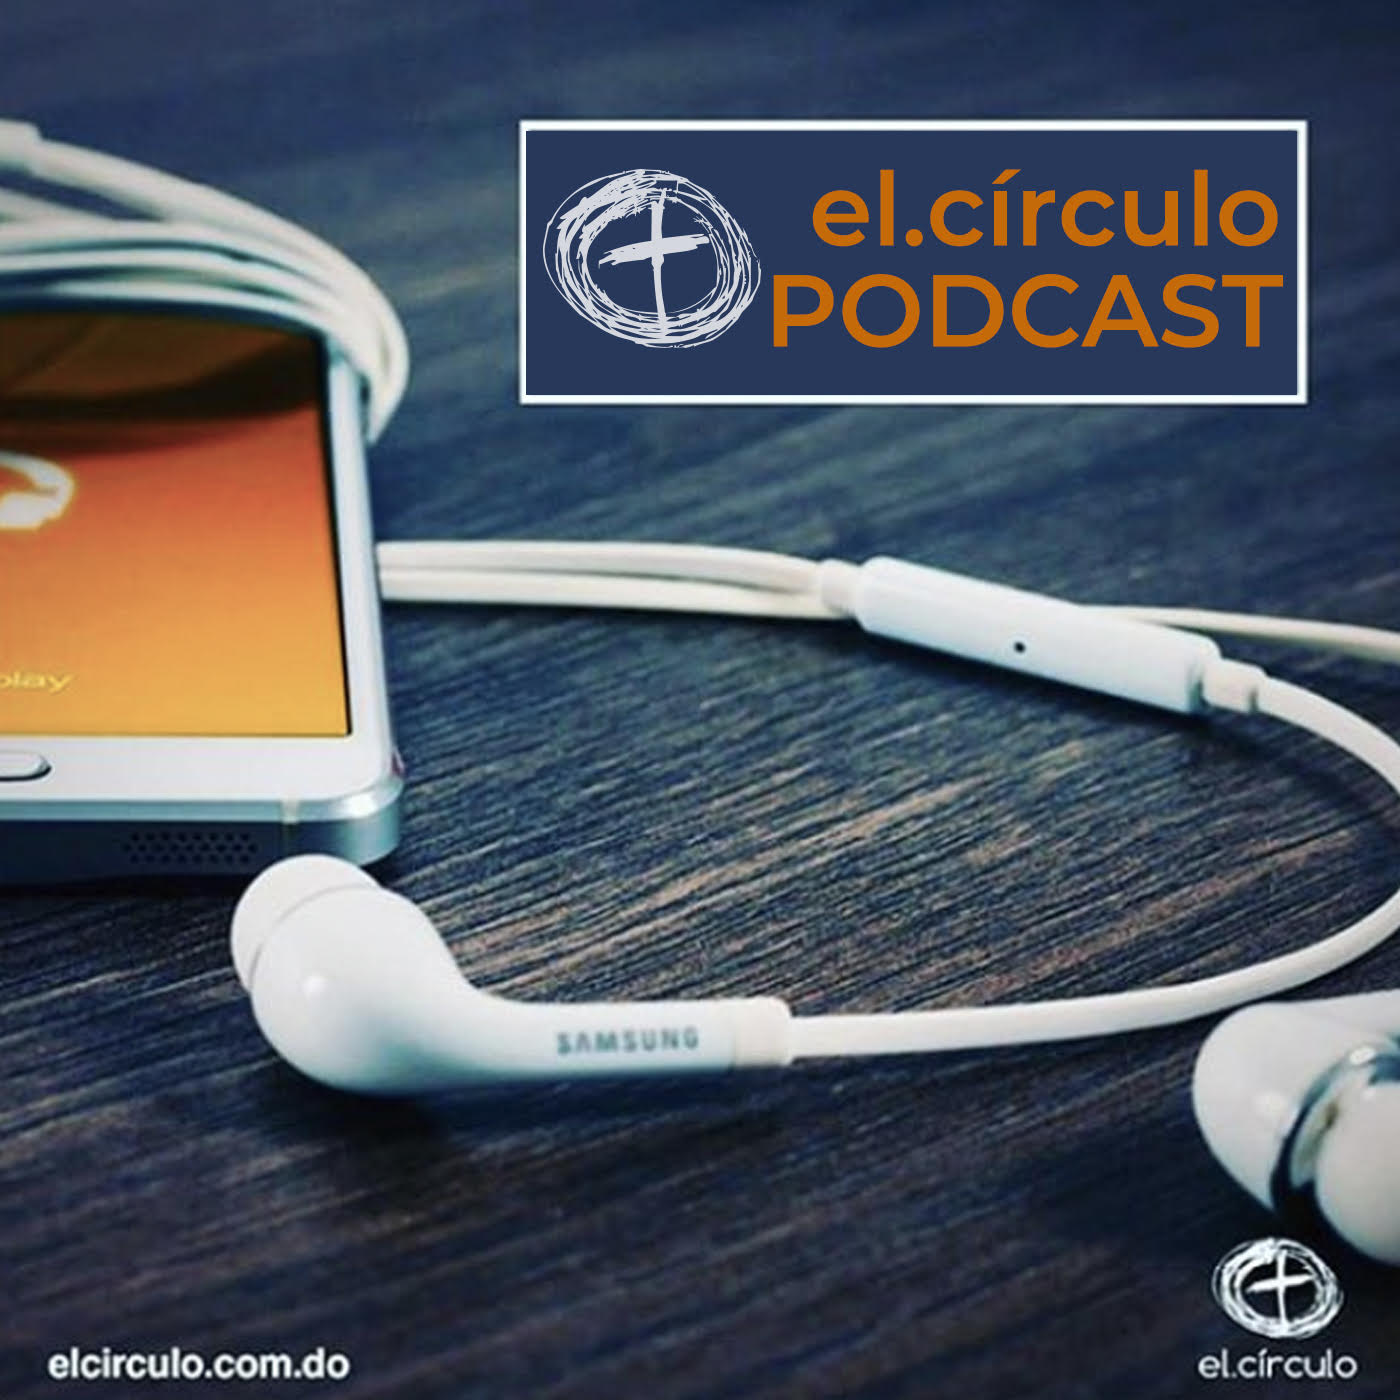 El Circulo Podcast